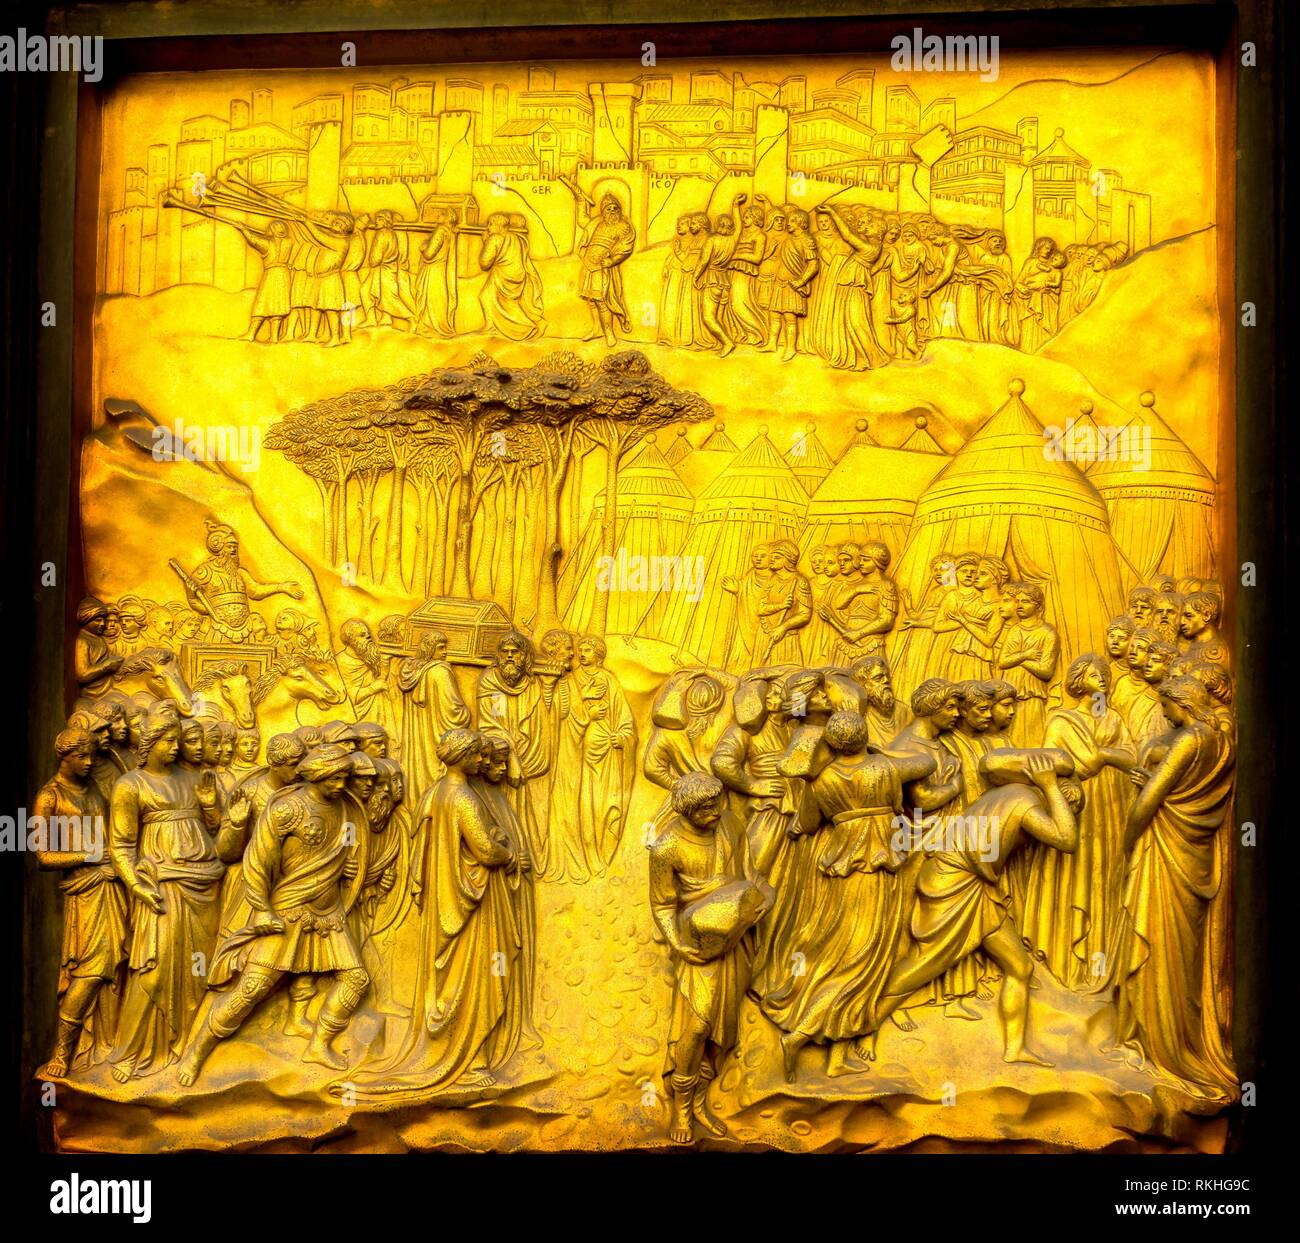 Fall of Jericho Gates of Paradise Ghiberti Bronze Door Bapistry Duomo Cathedral Church Florence Italy. Bapistry was created in 1100s. Bronze Doors - Stock Image